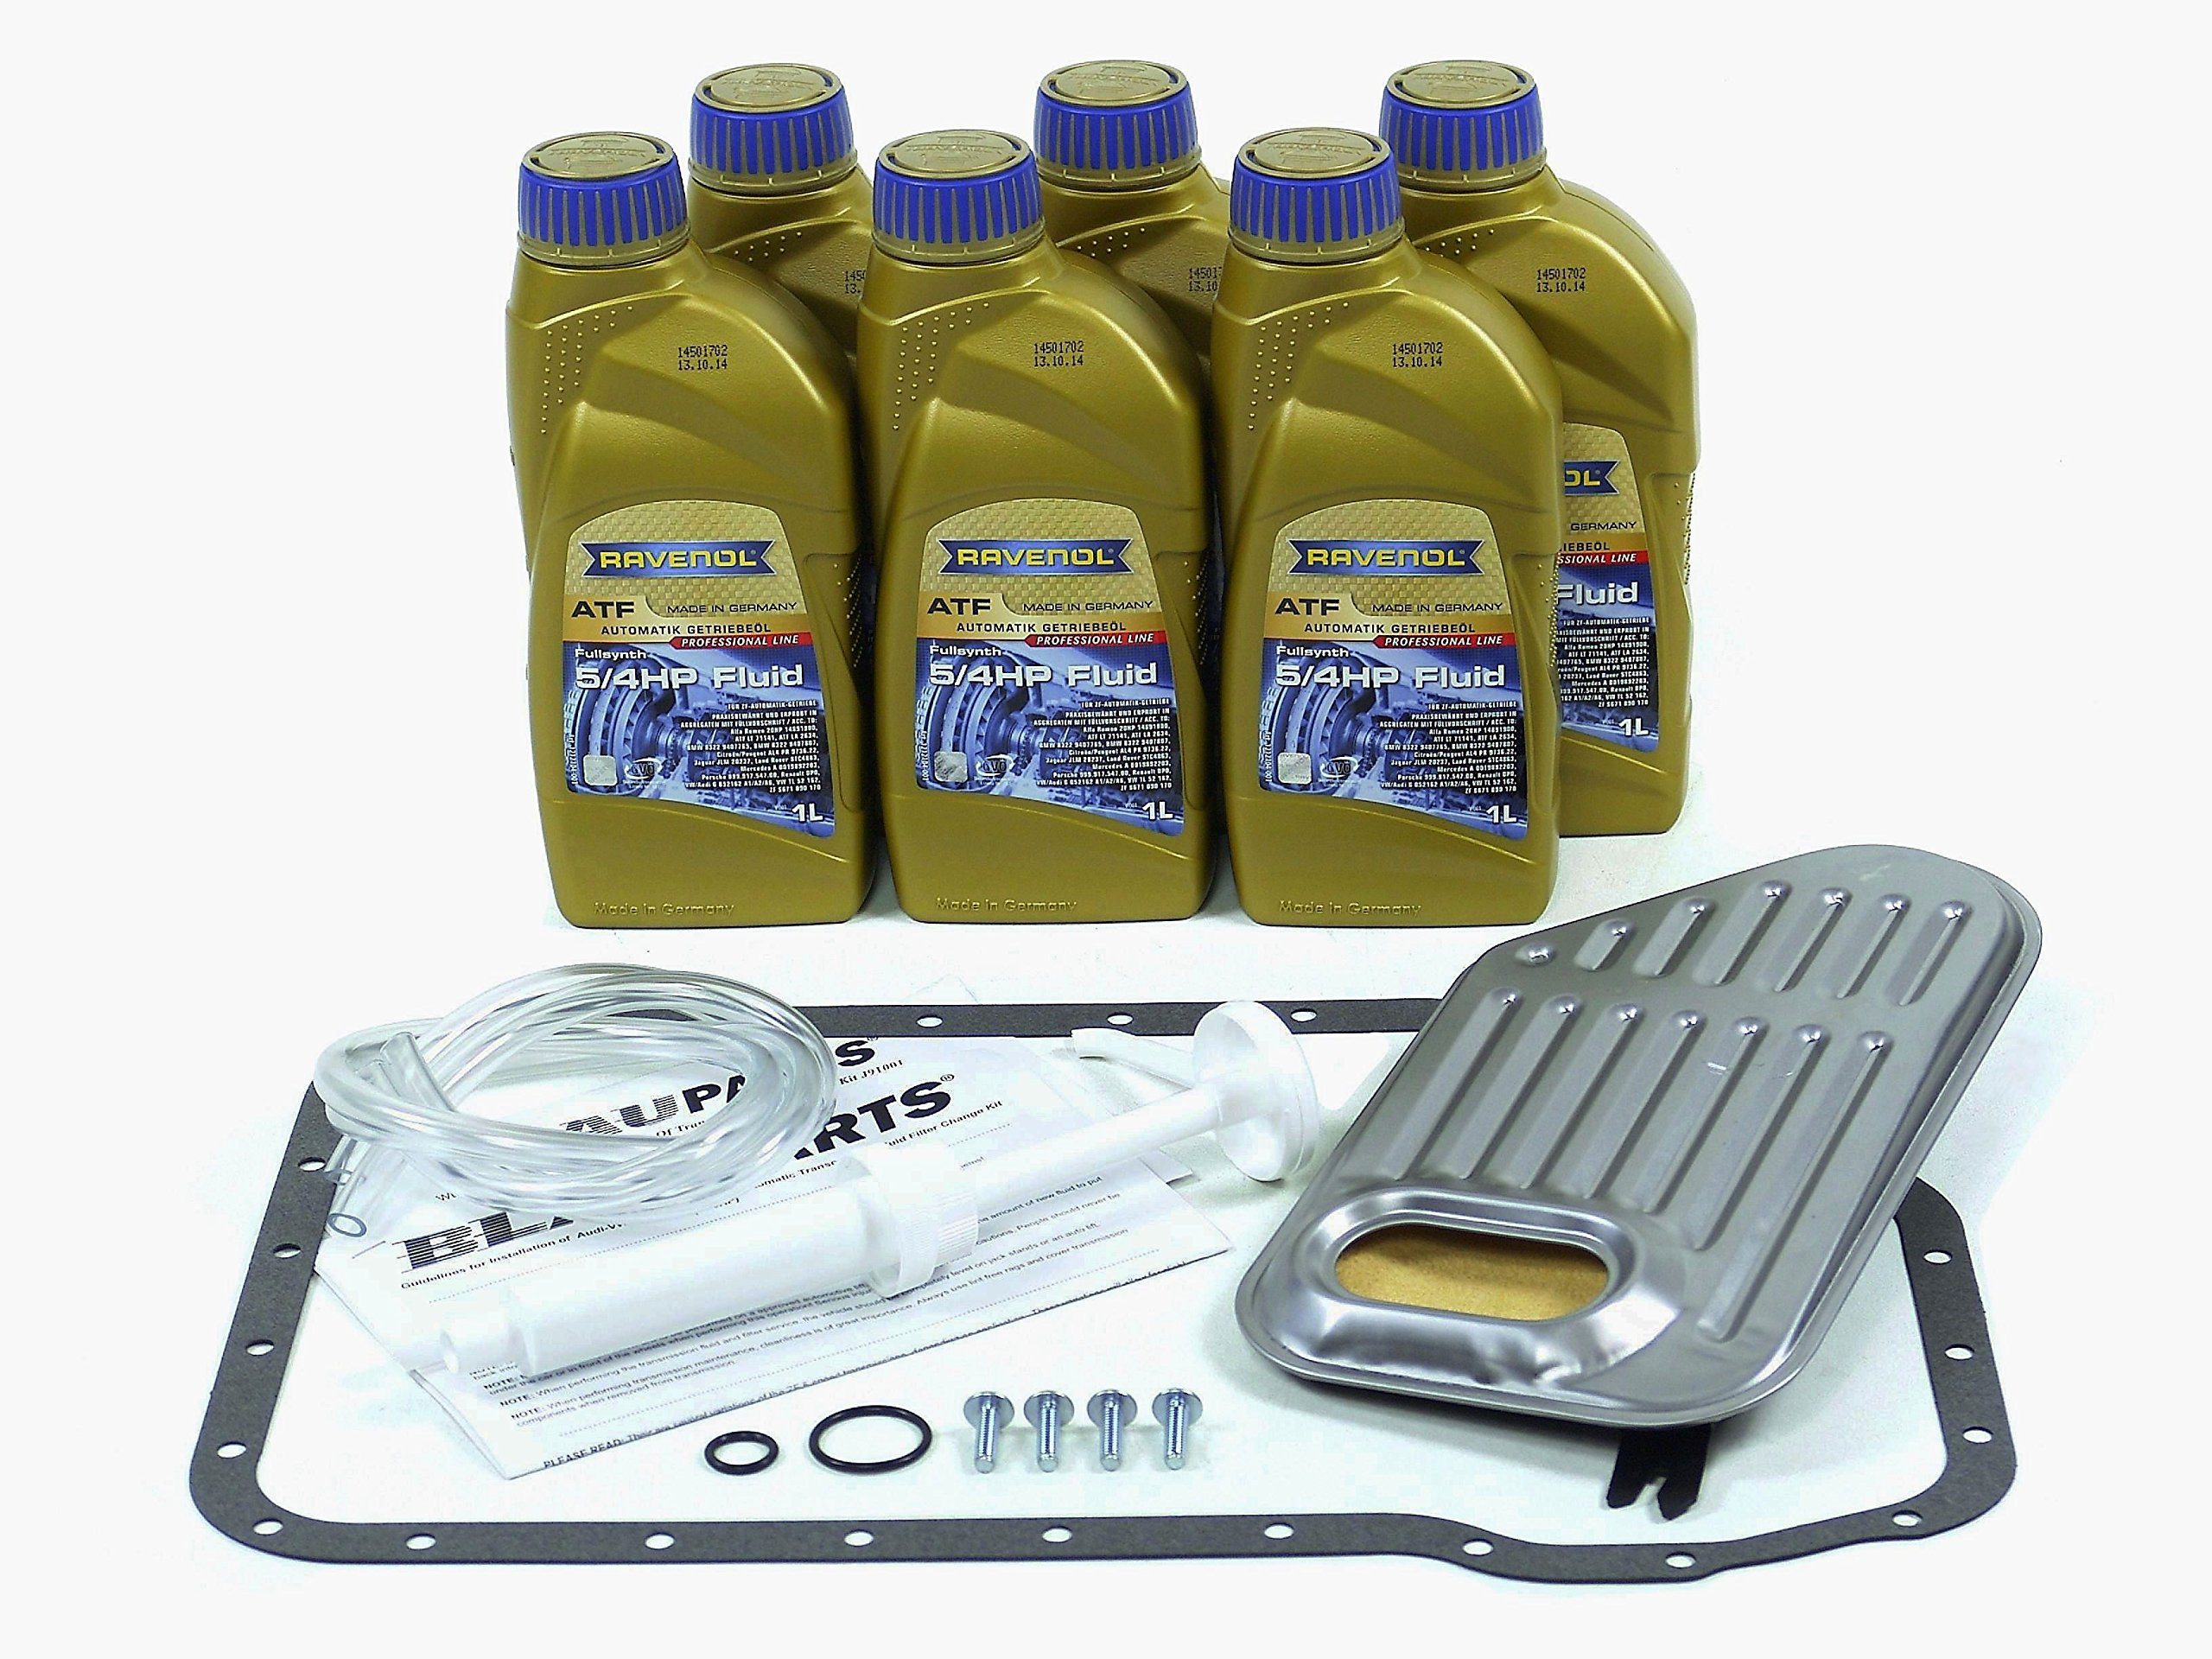 BLAU F2A1007-D Audi Allroad ATF Automatic Transmission Fluid Filter Kit - 2001-05